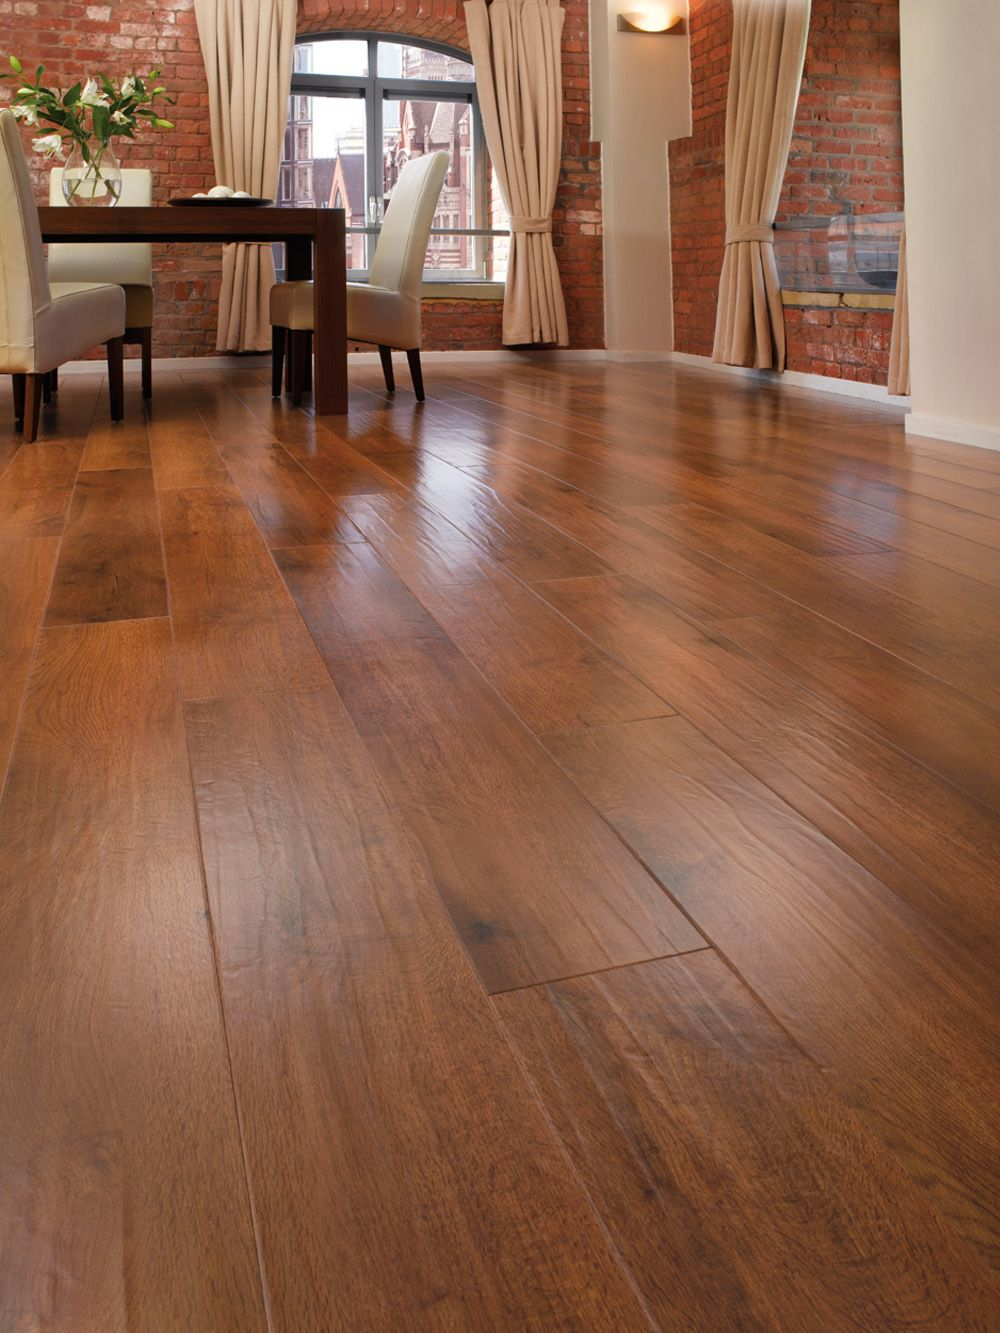 Commercial Vinyl Flooring Vinyl are now considered an